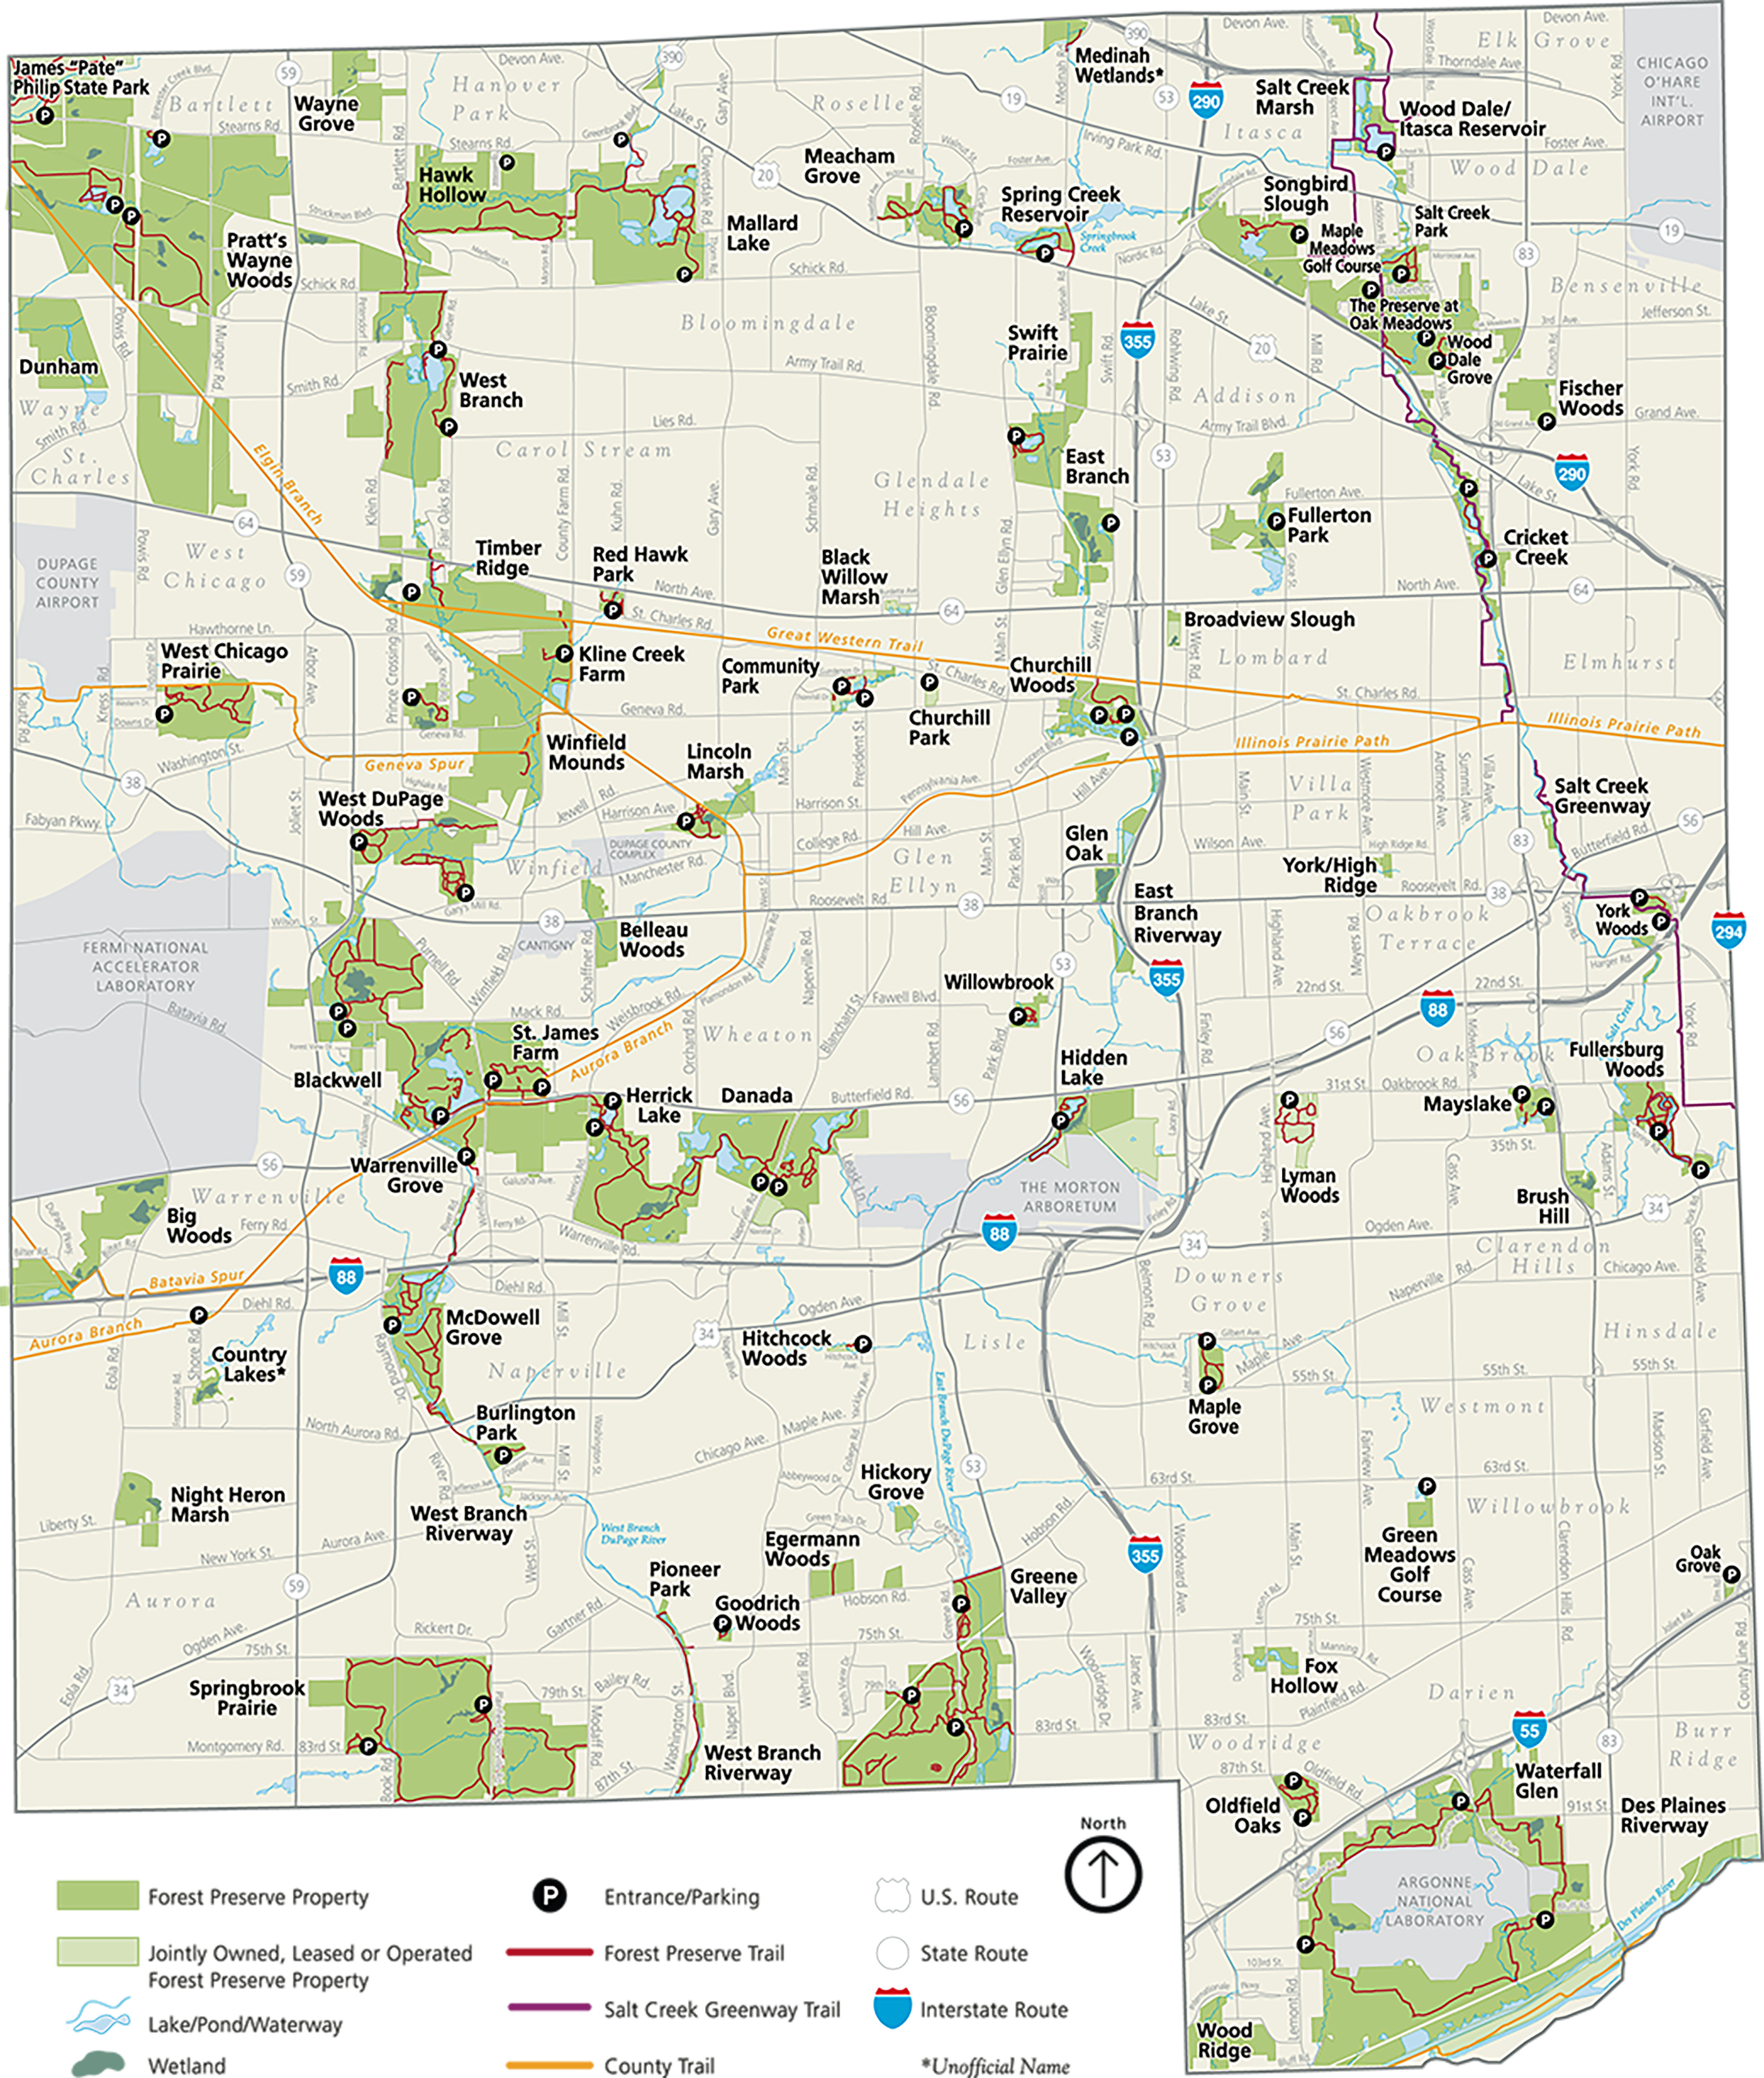 dupage-forest-preserves-map-2017.png